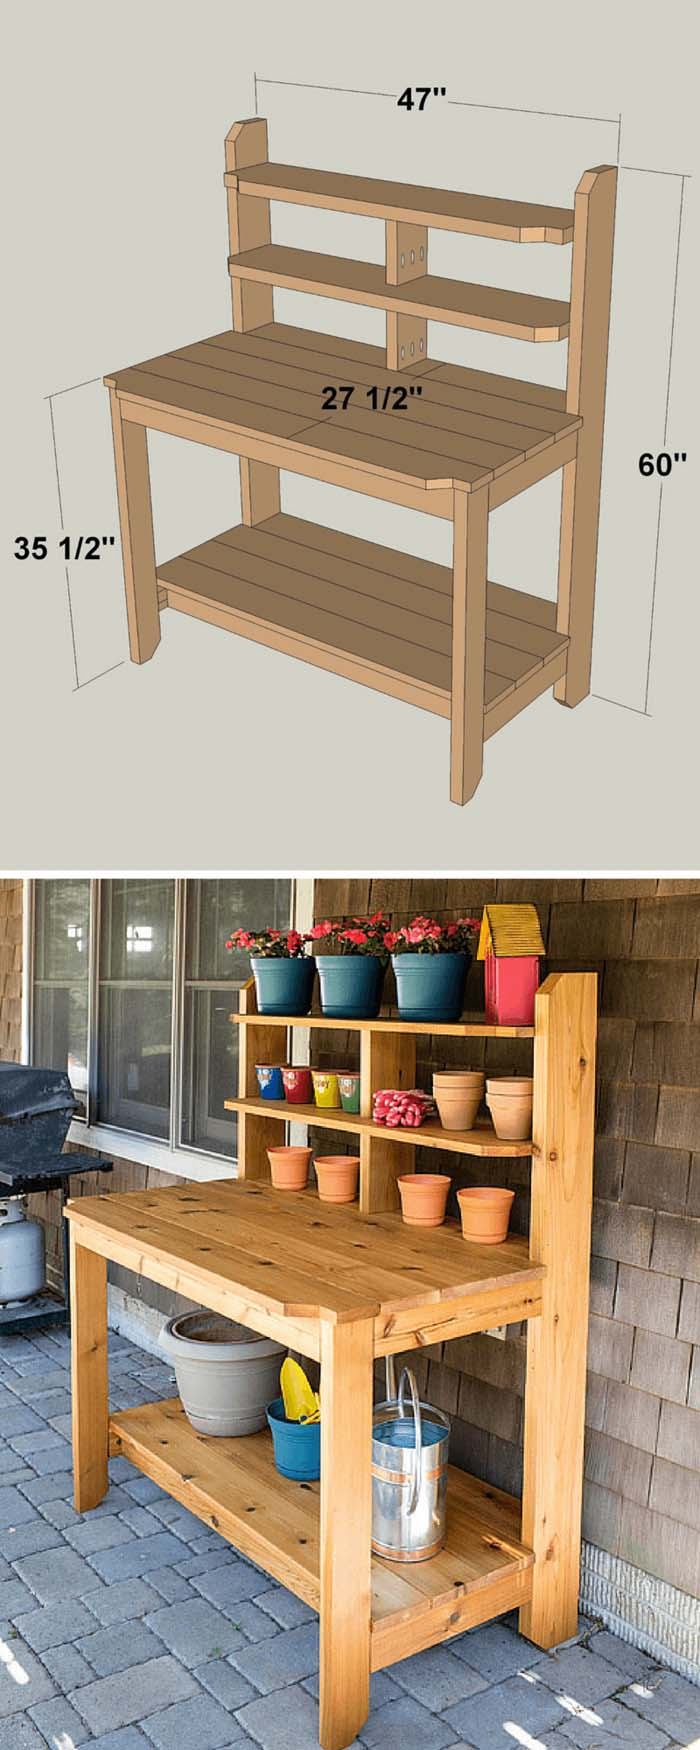 Cottage Garden Planter's Stand #diy #project #backyard #garden #decorhomeideas